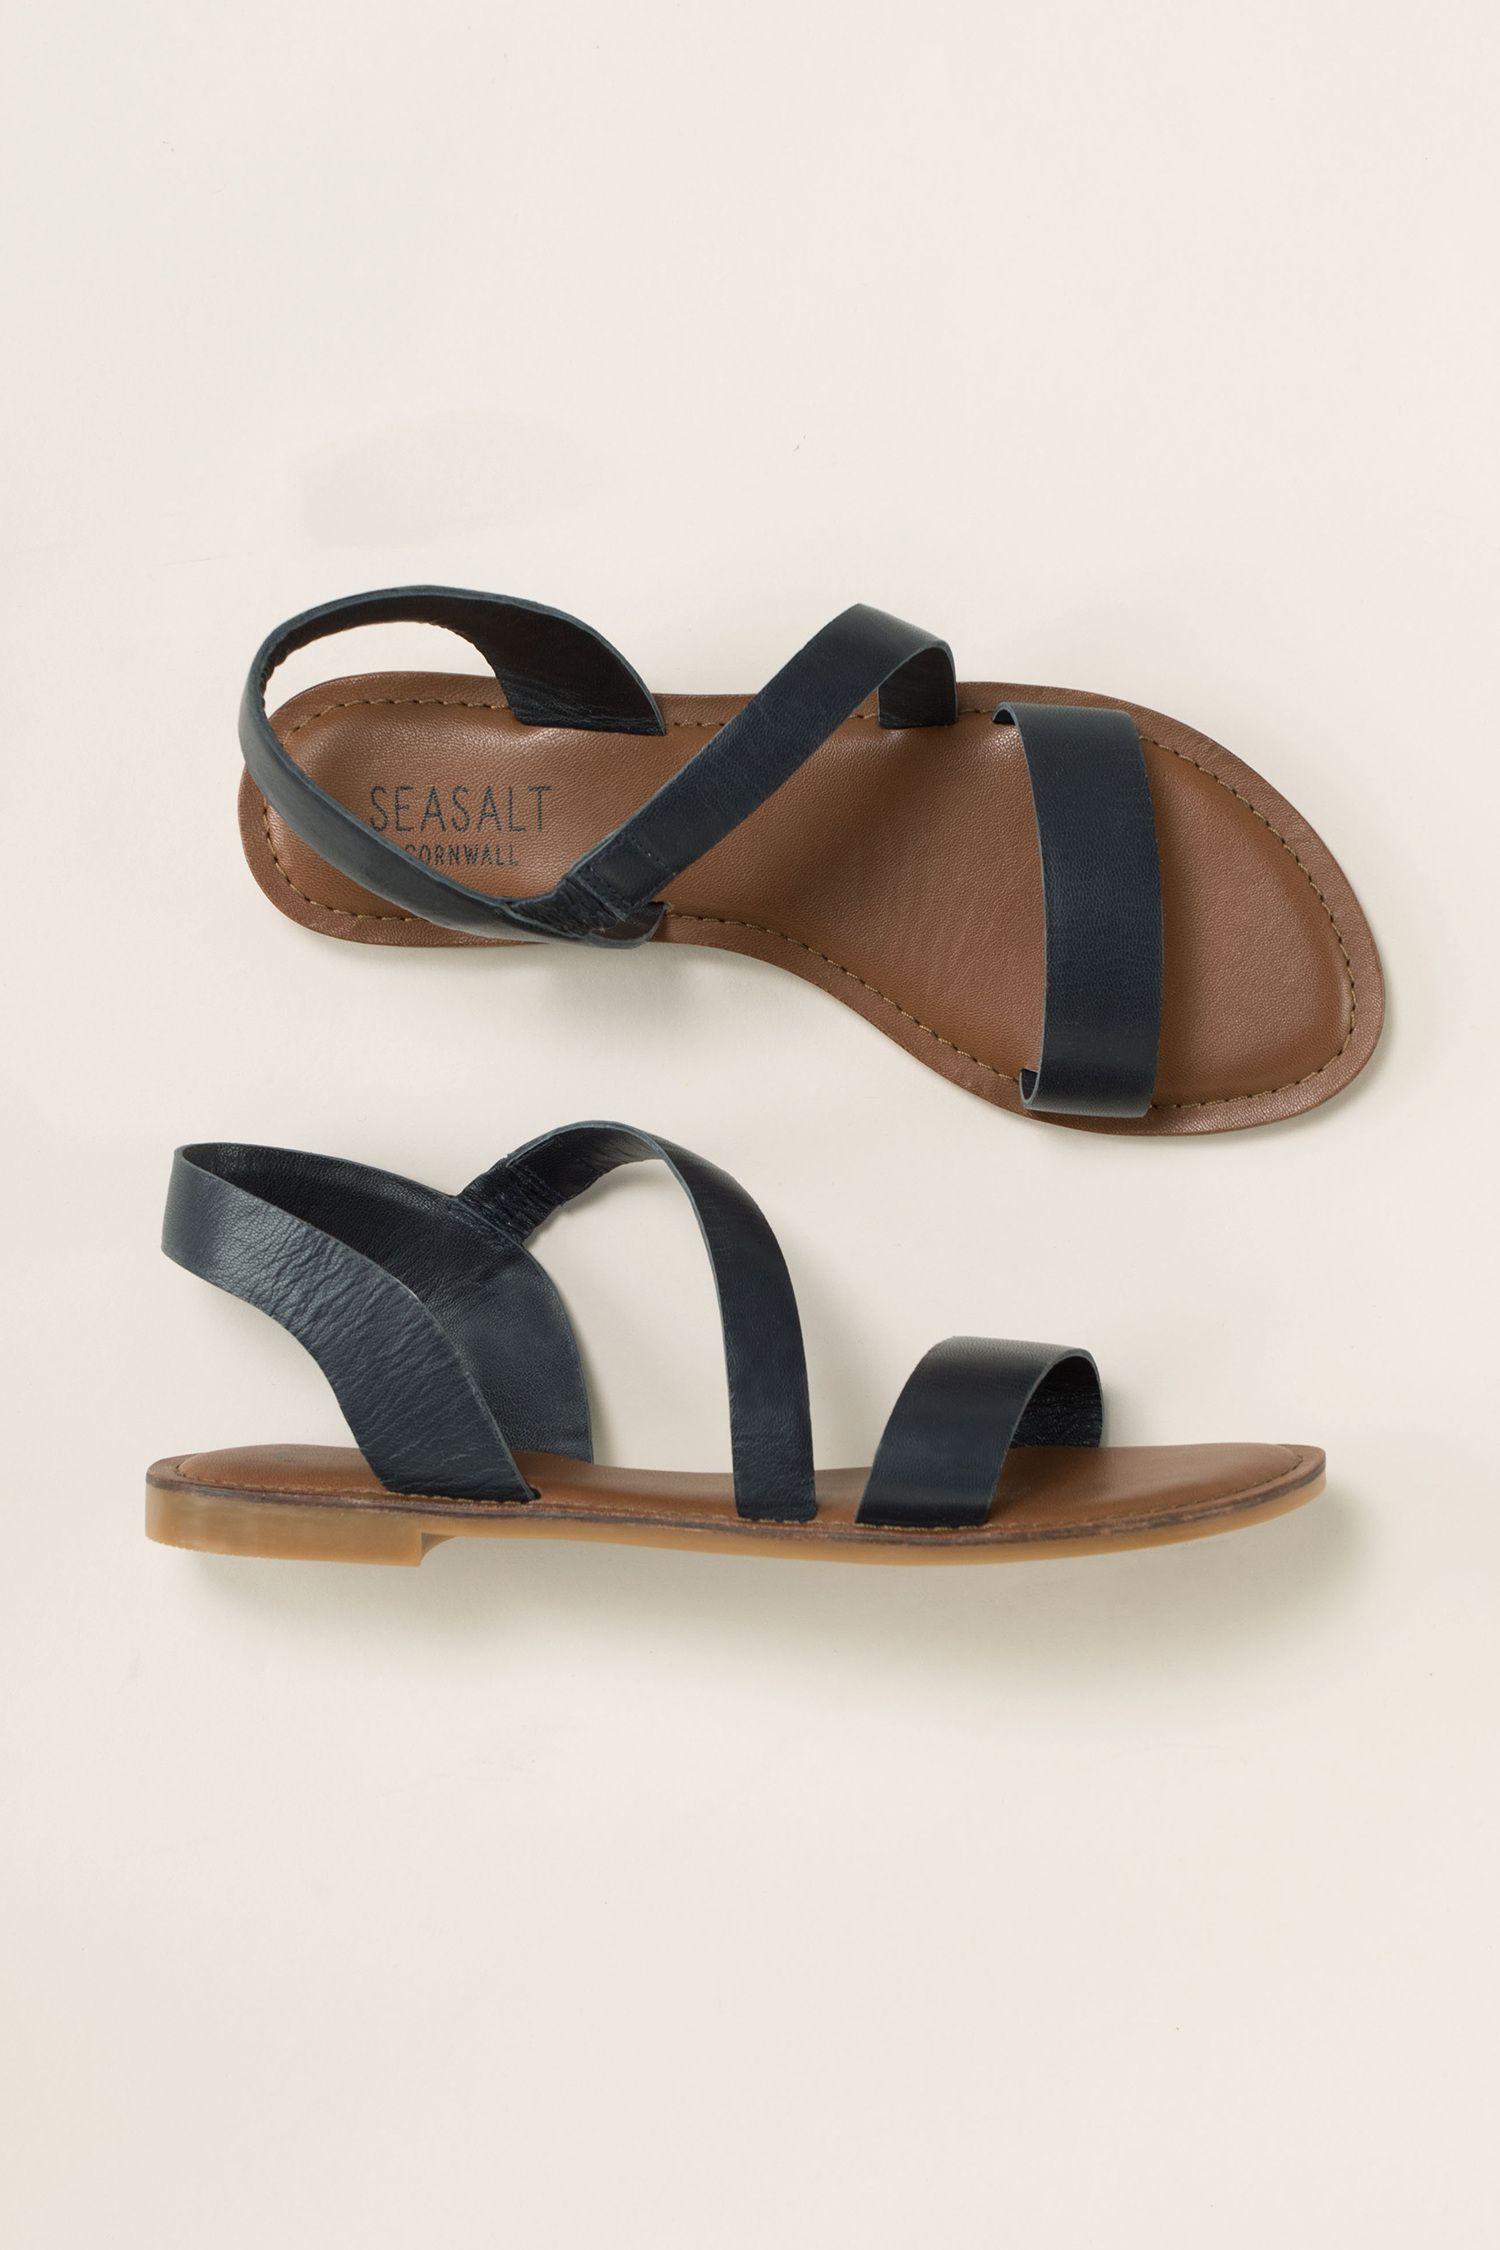 A lovely flat sandal in beautiful soft leather, Seasalt Sunny Cove Sandals  are comfortable to